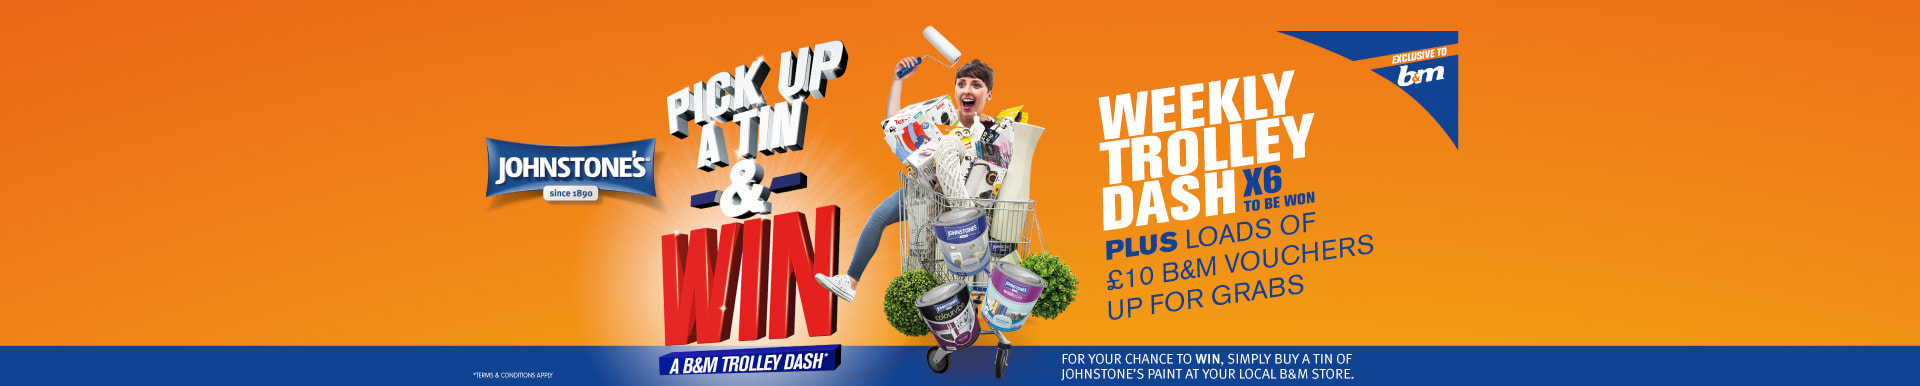 Buy a tin of Johnstone's paint and win a trolley dash at B&M.